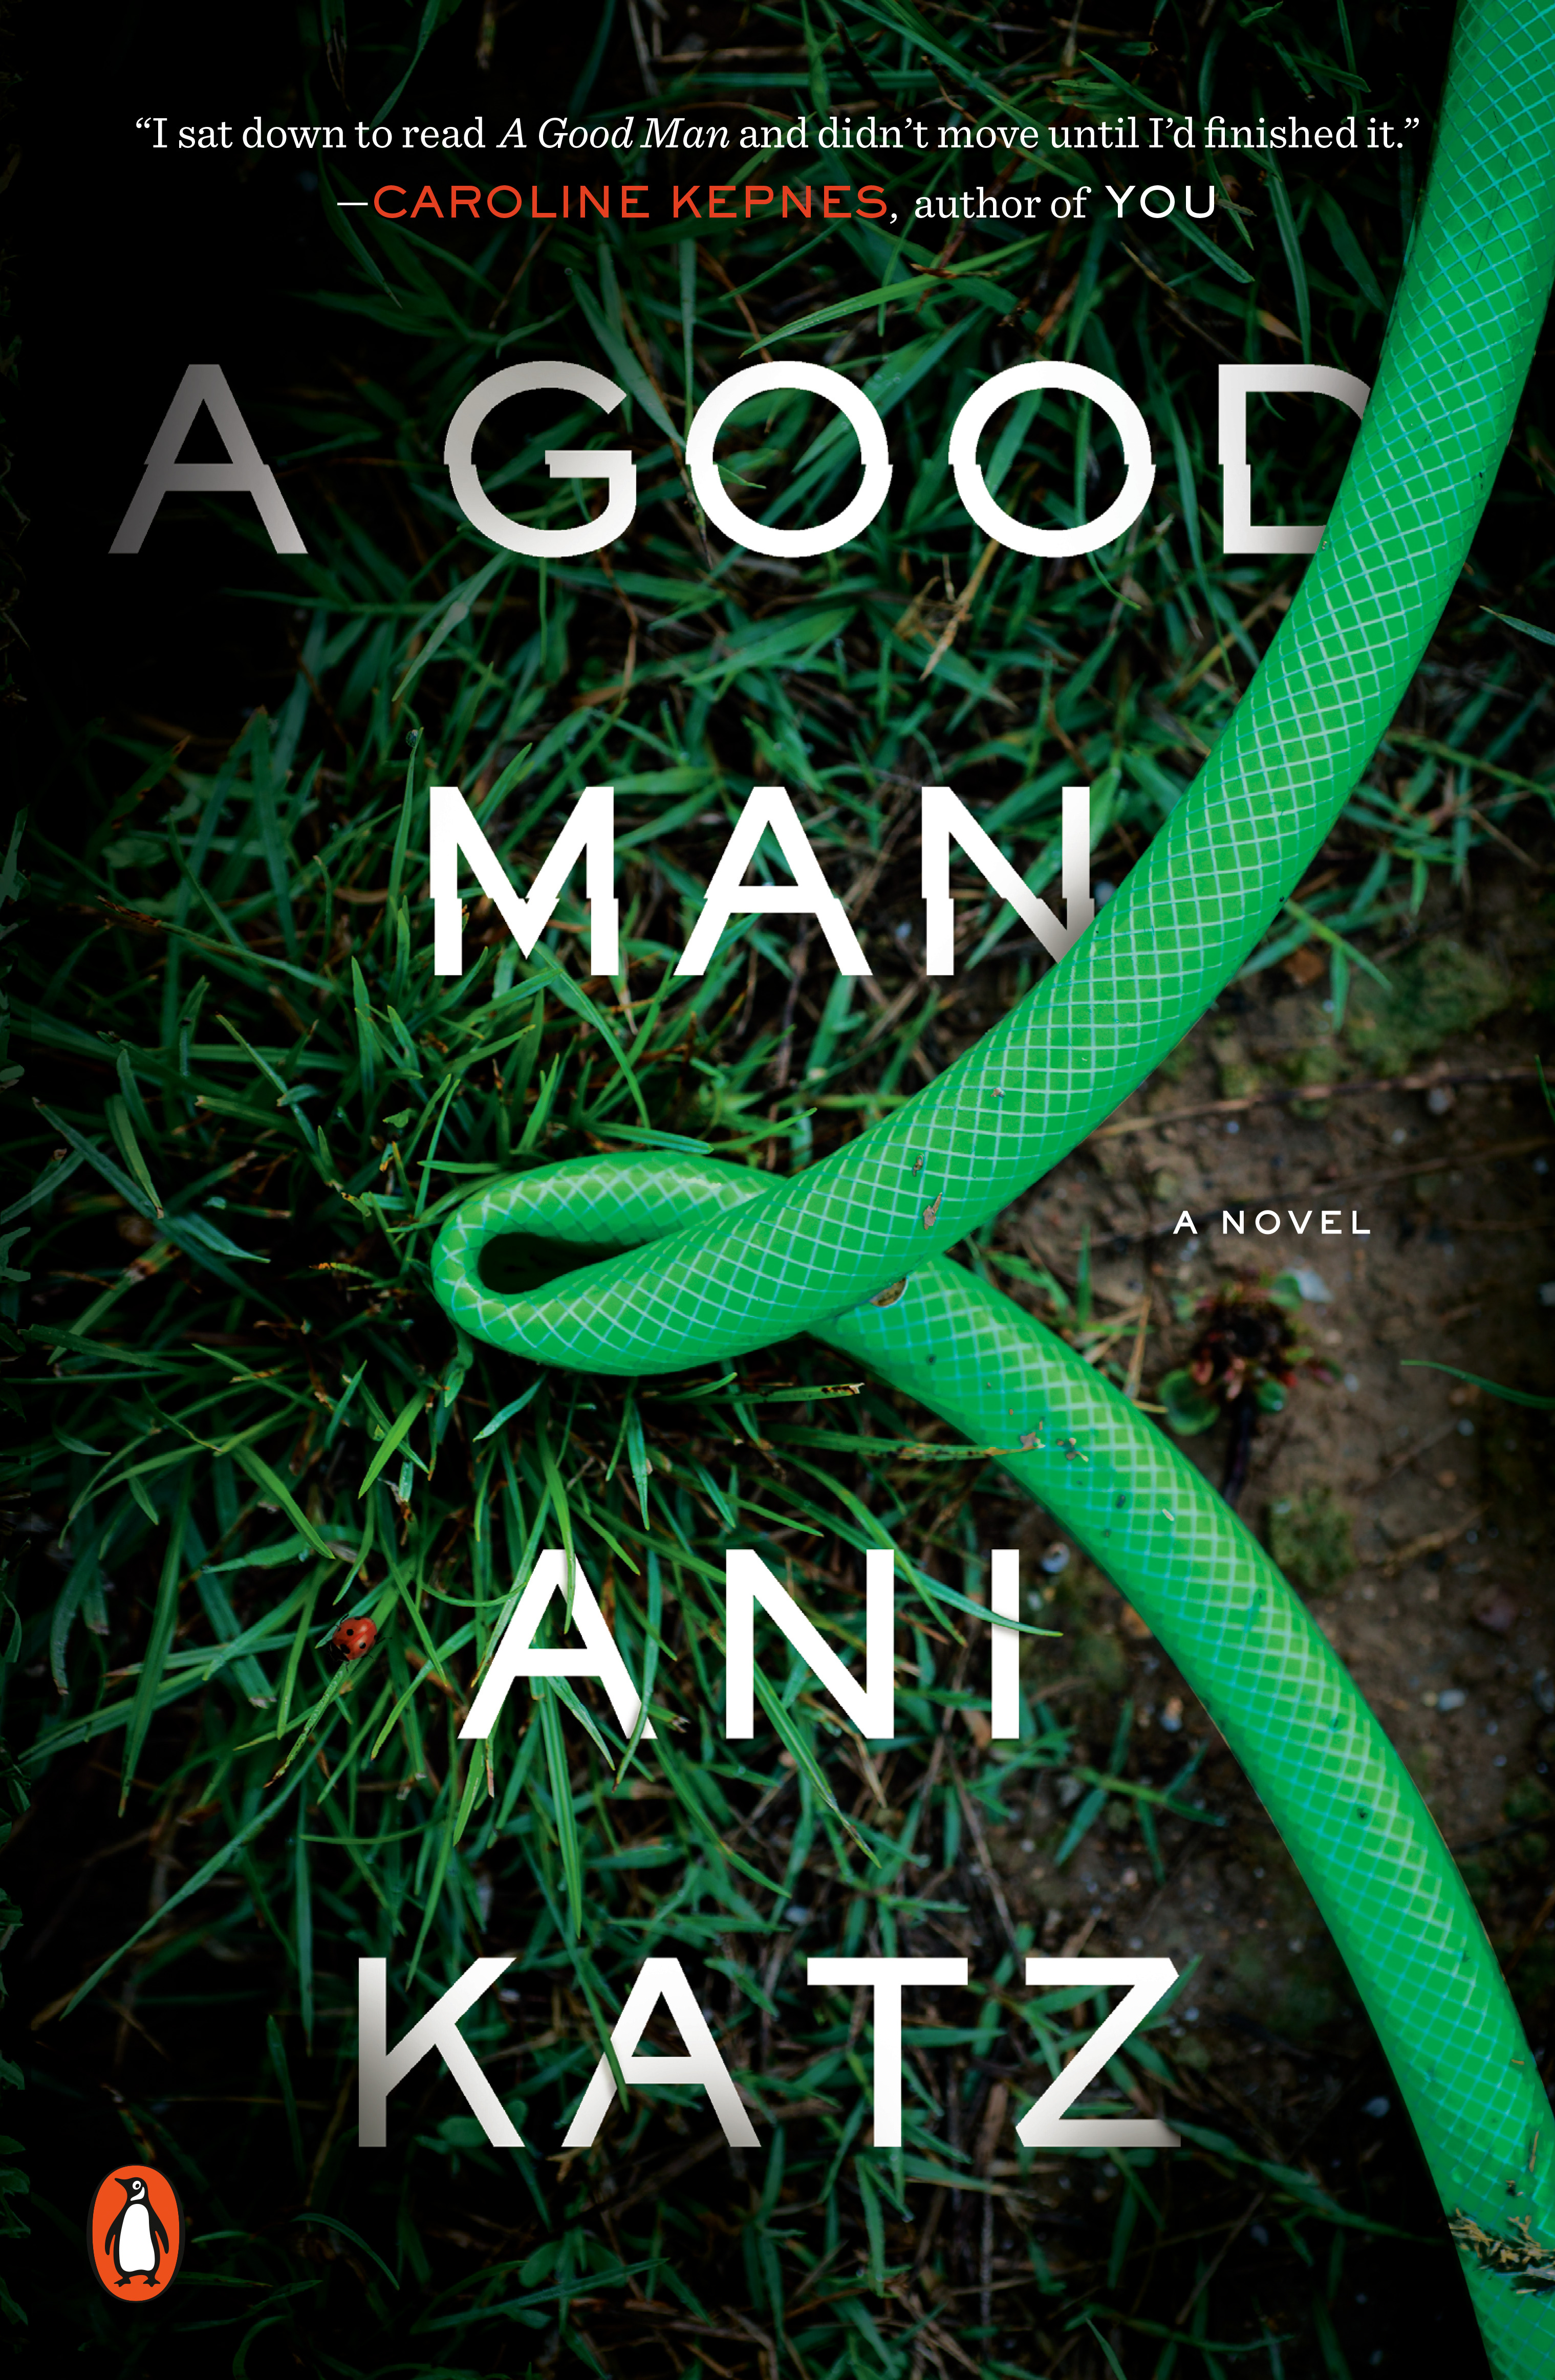 Book Launch: A Good Man by Ani Katz in conversation with Adrienne Westenfeld